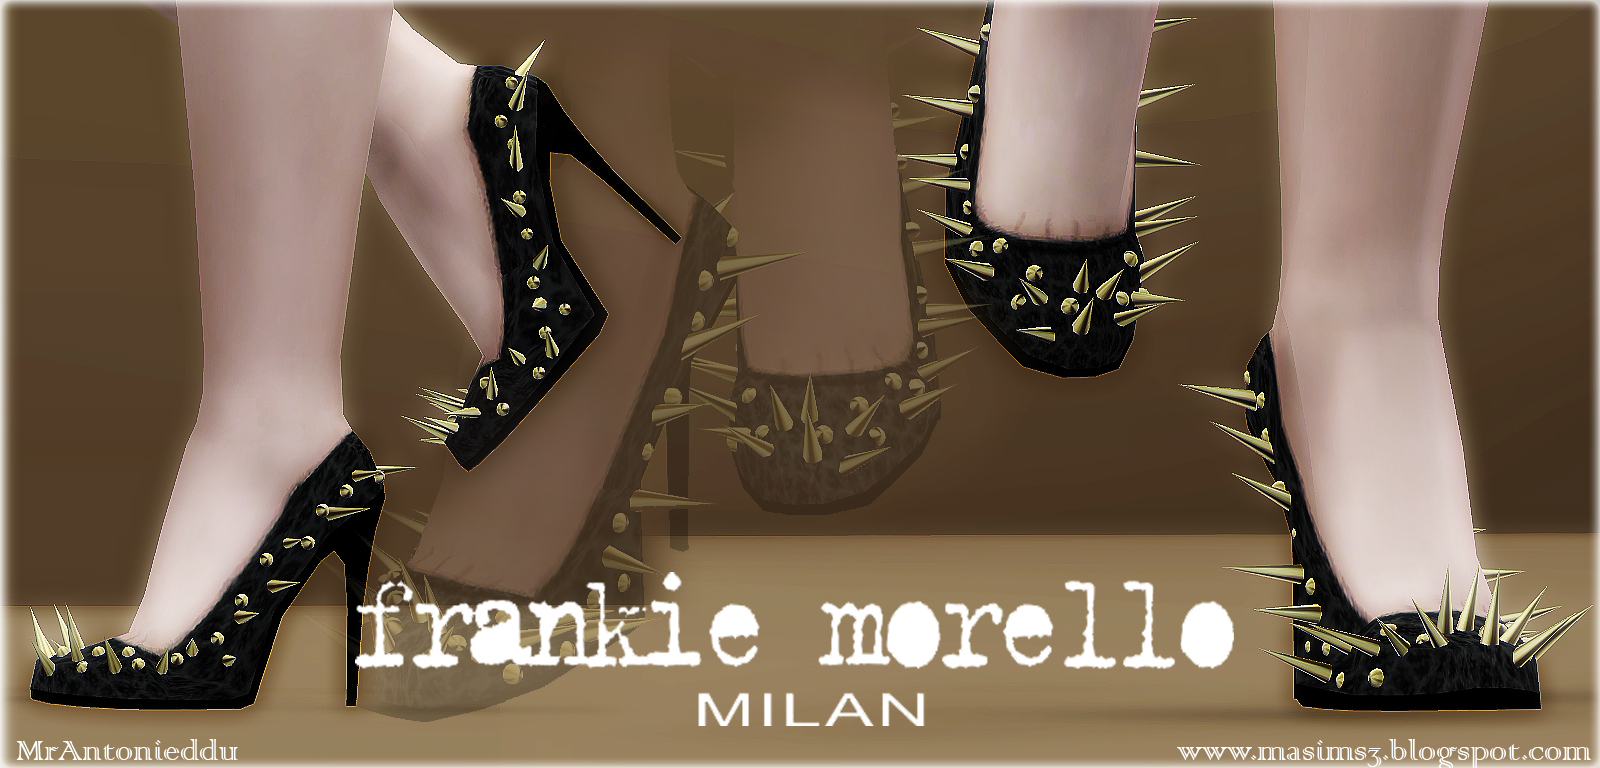 Frankie Morello Spiked Stiletto Shoes by MrAntonieddu